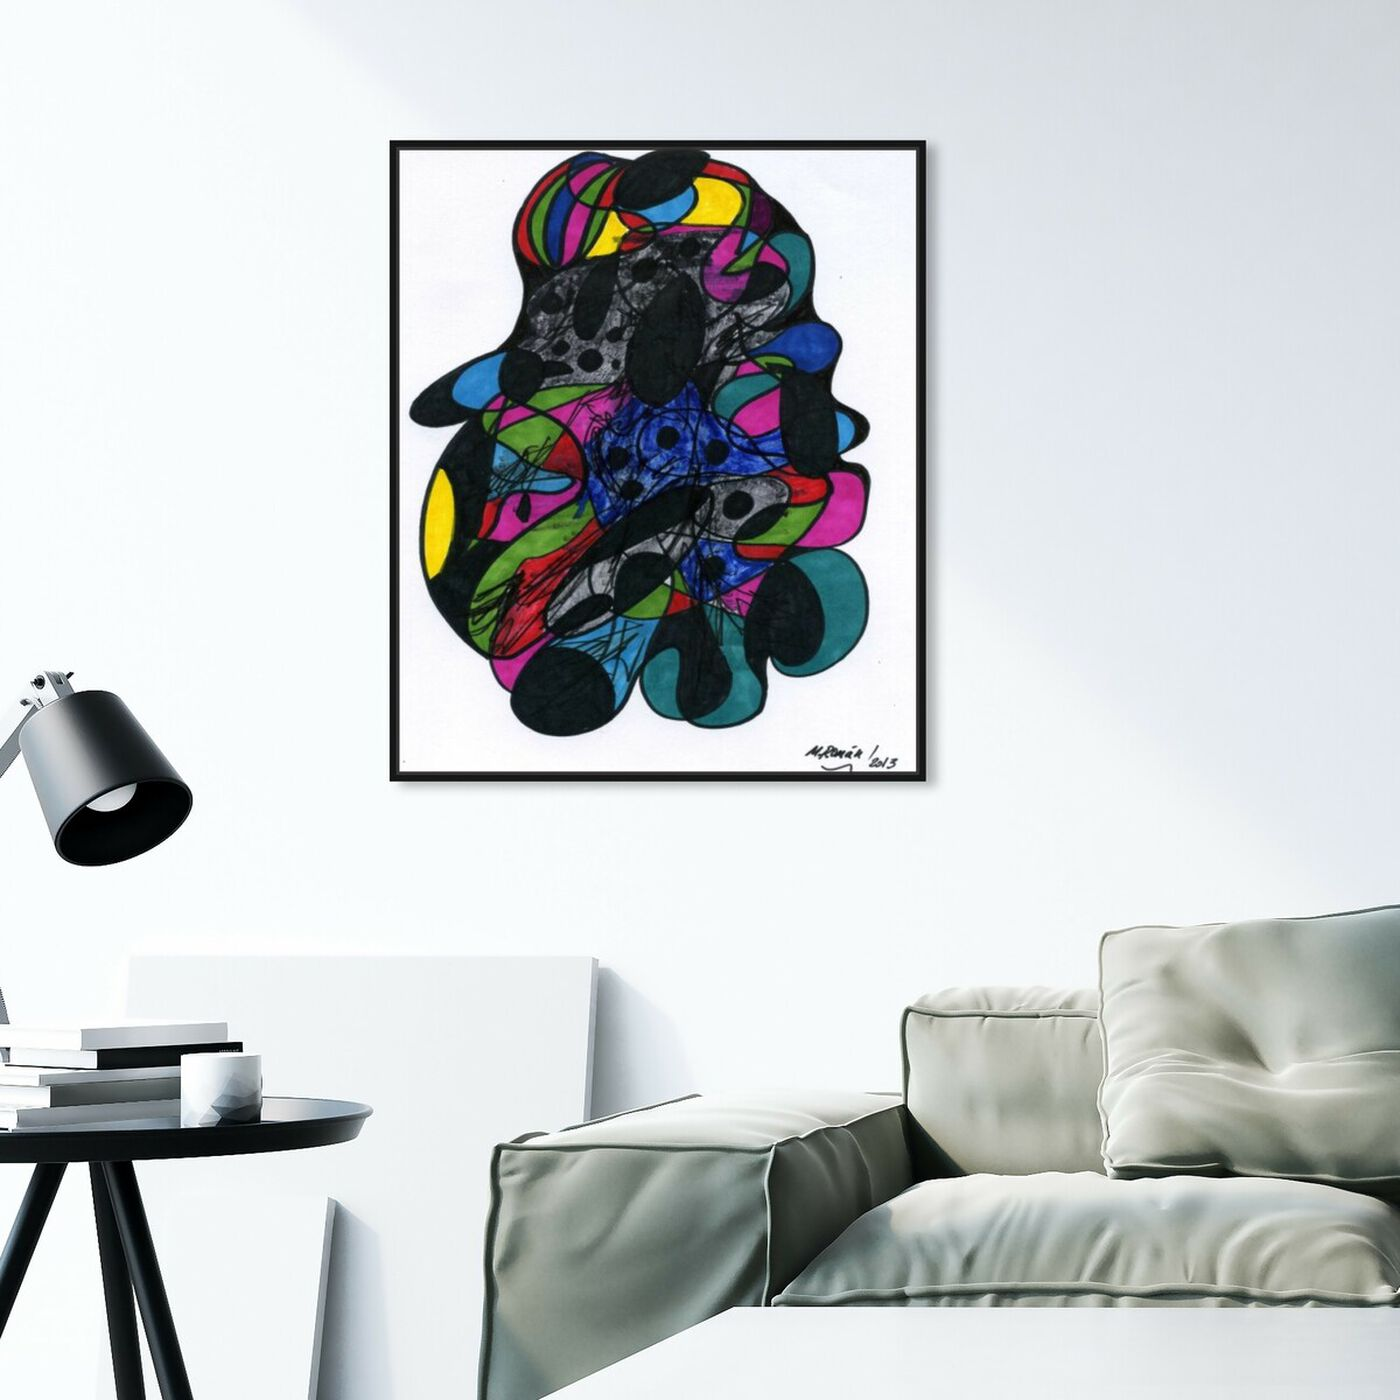 Hanging view of Nebulos featuring abstract and geometric art.